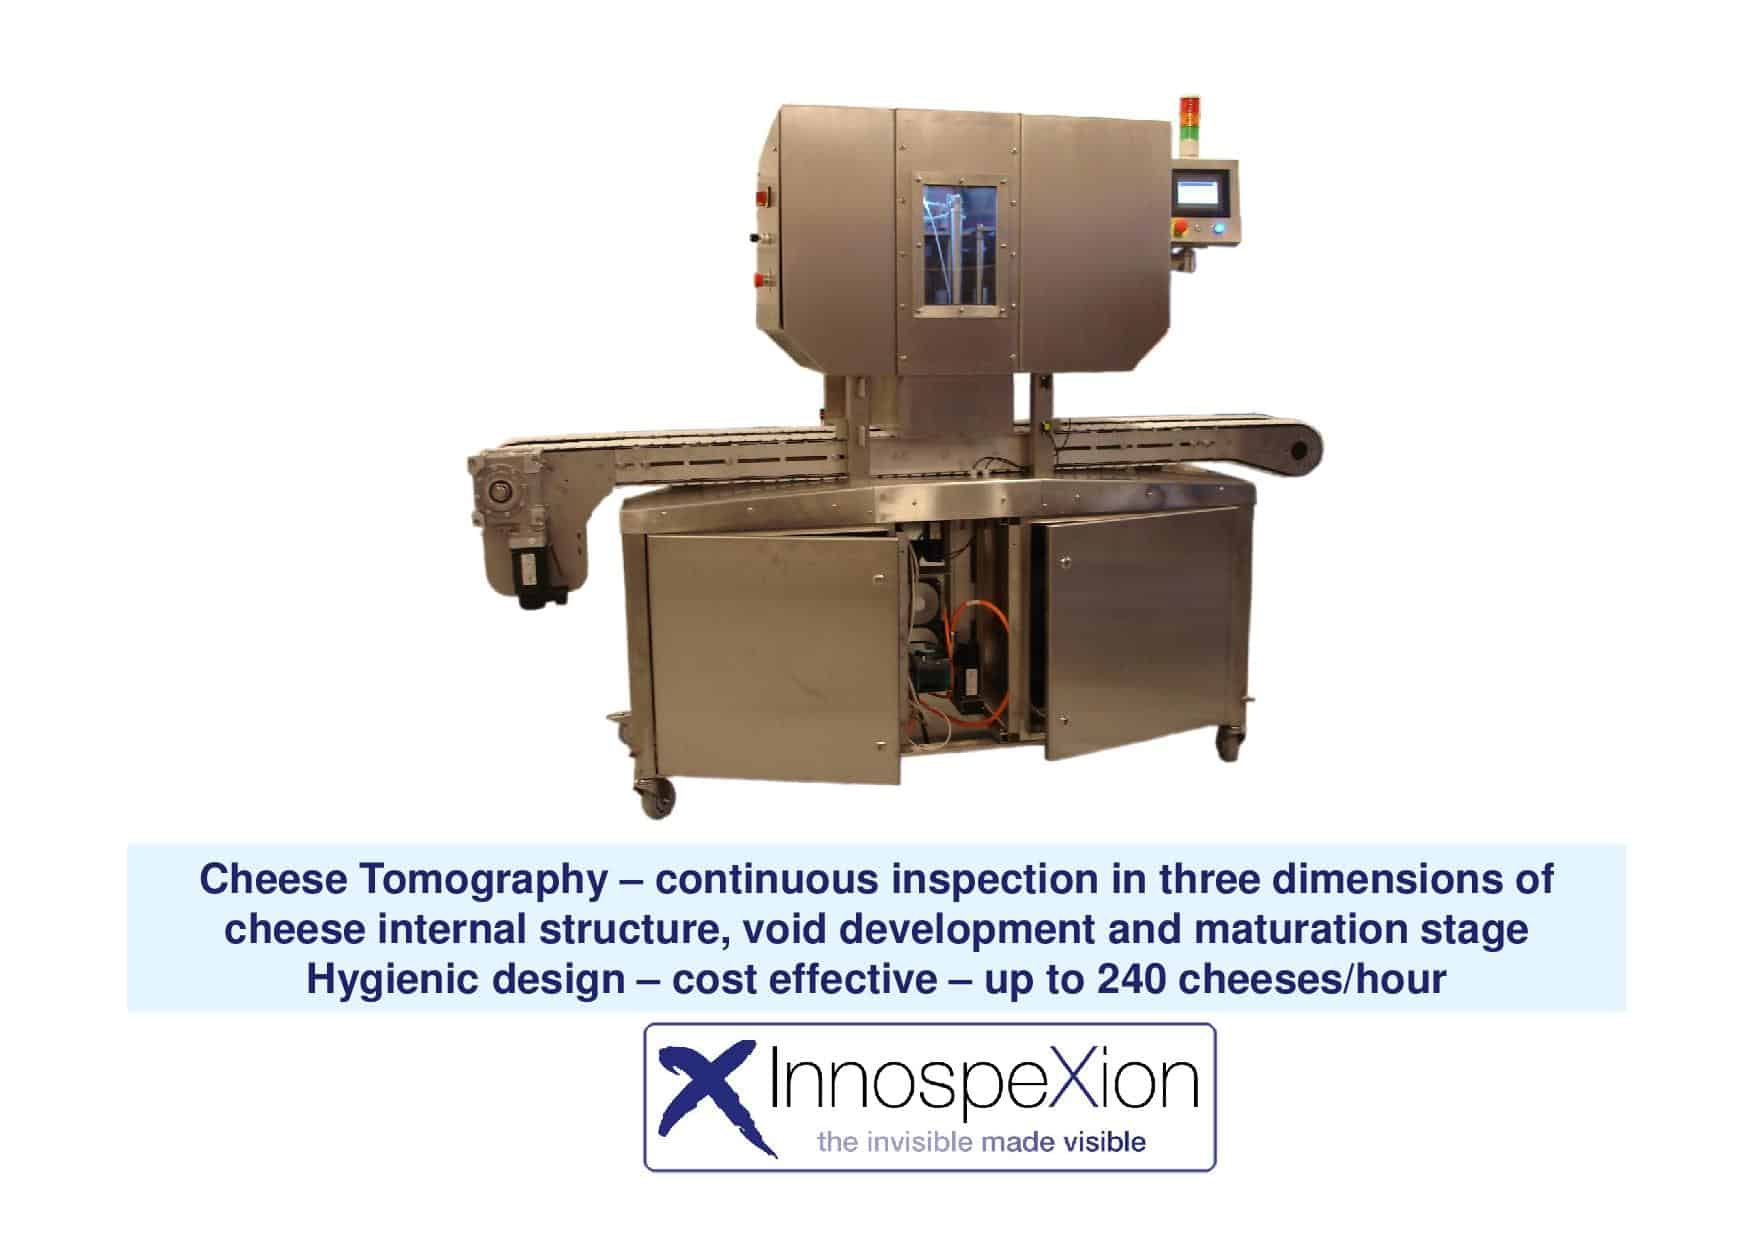 X-ray cheese tomography imaging system 1